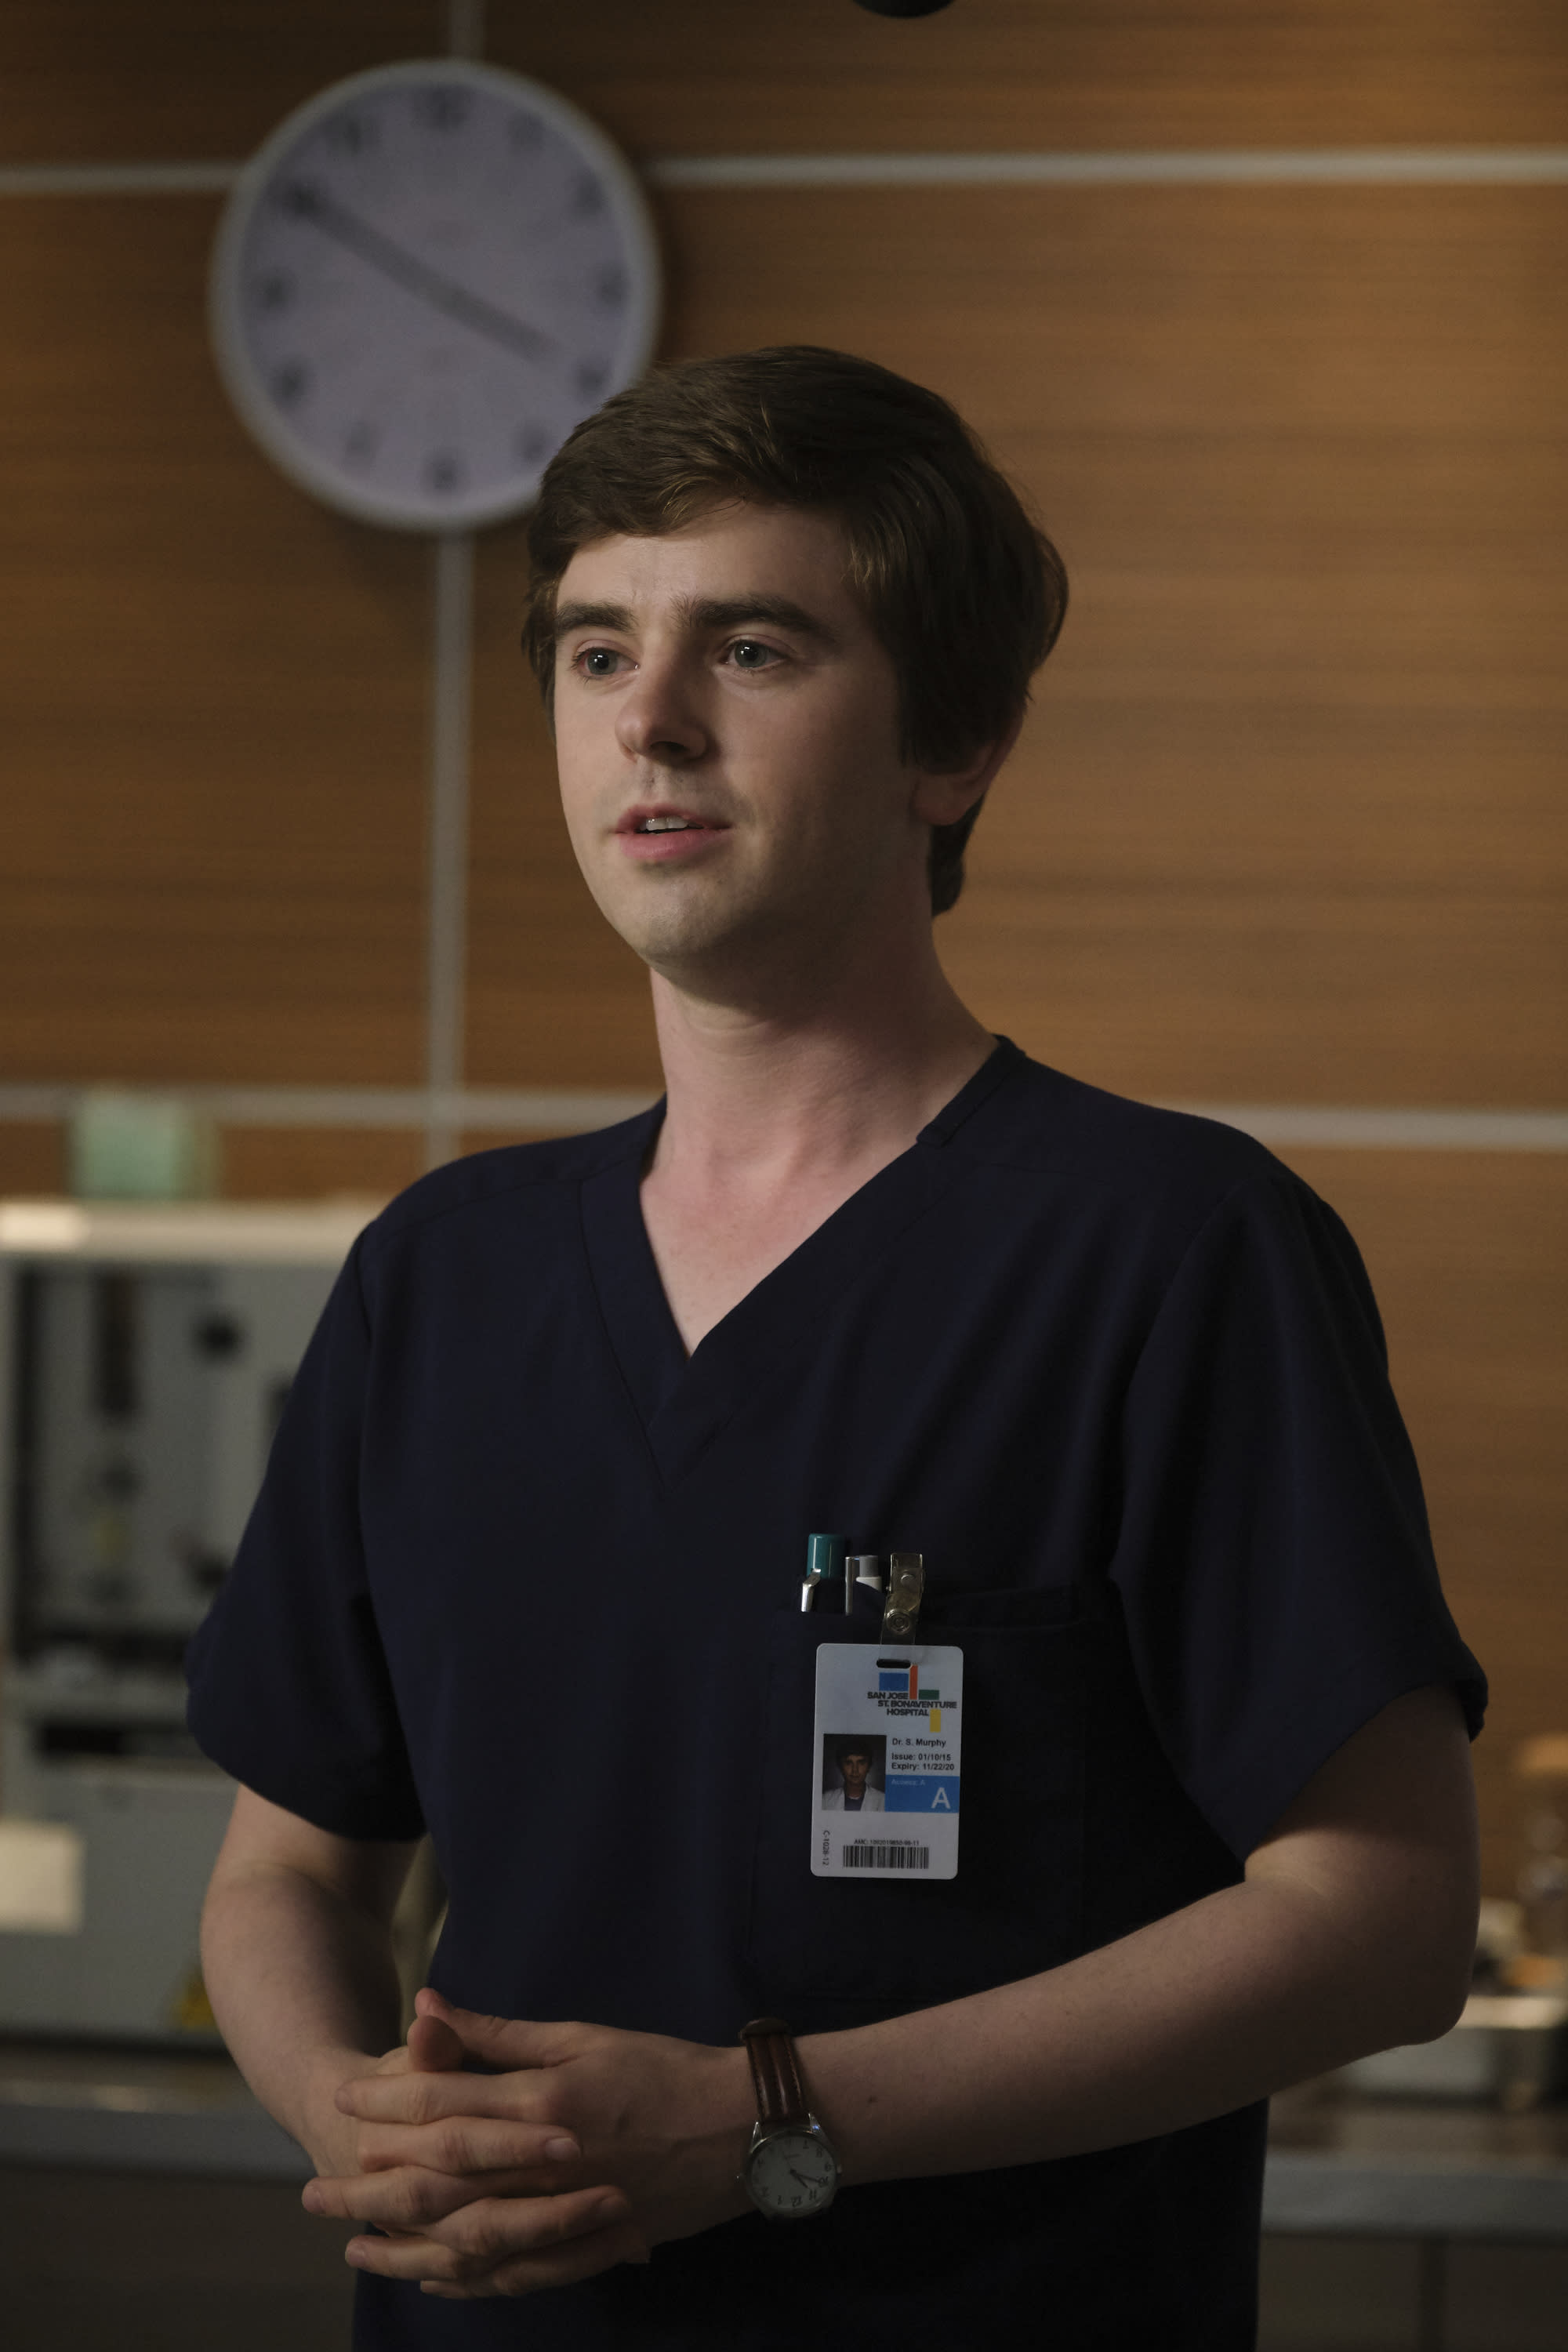 Freddie Highmore plays Shaun, a surgical resident with autism, on The Good Doctor. (Photo: Jeff Weddell via Getty Images)